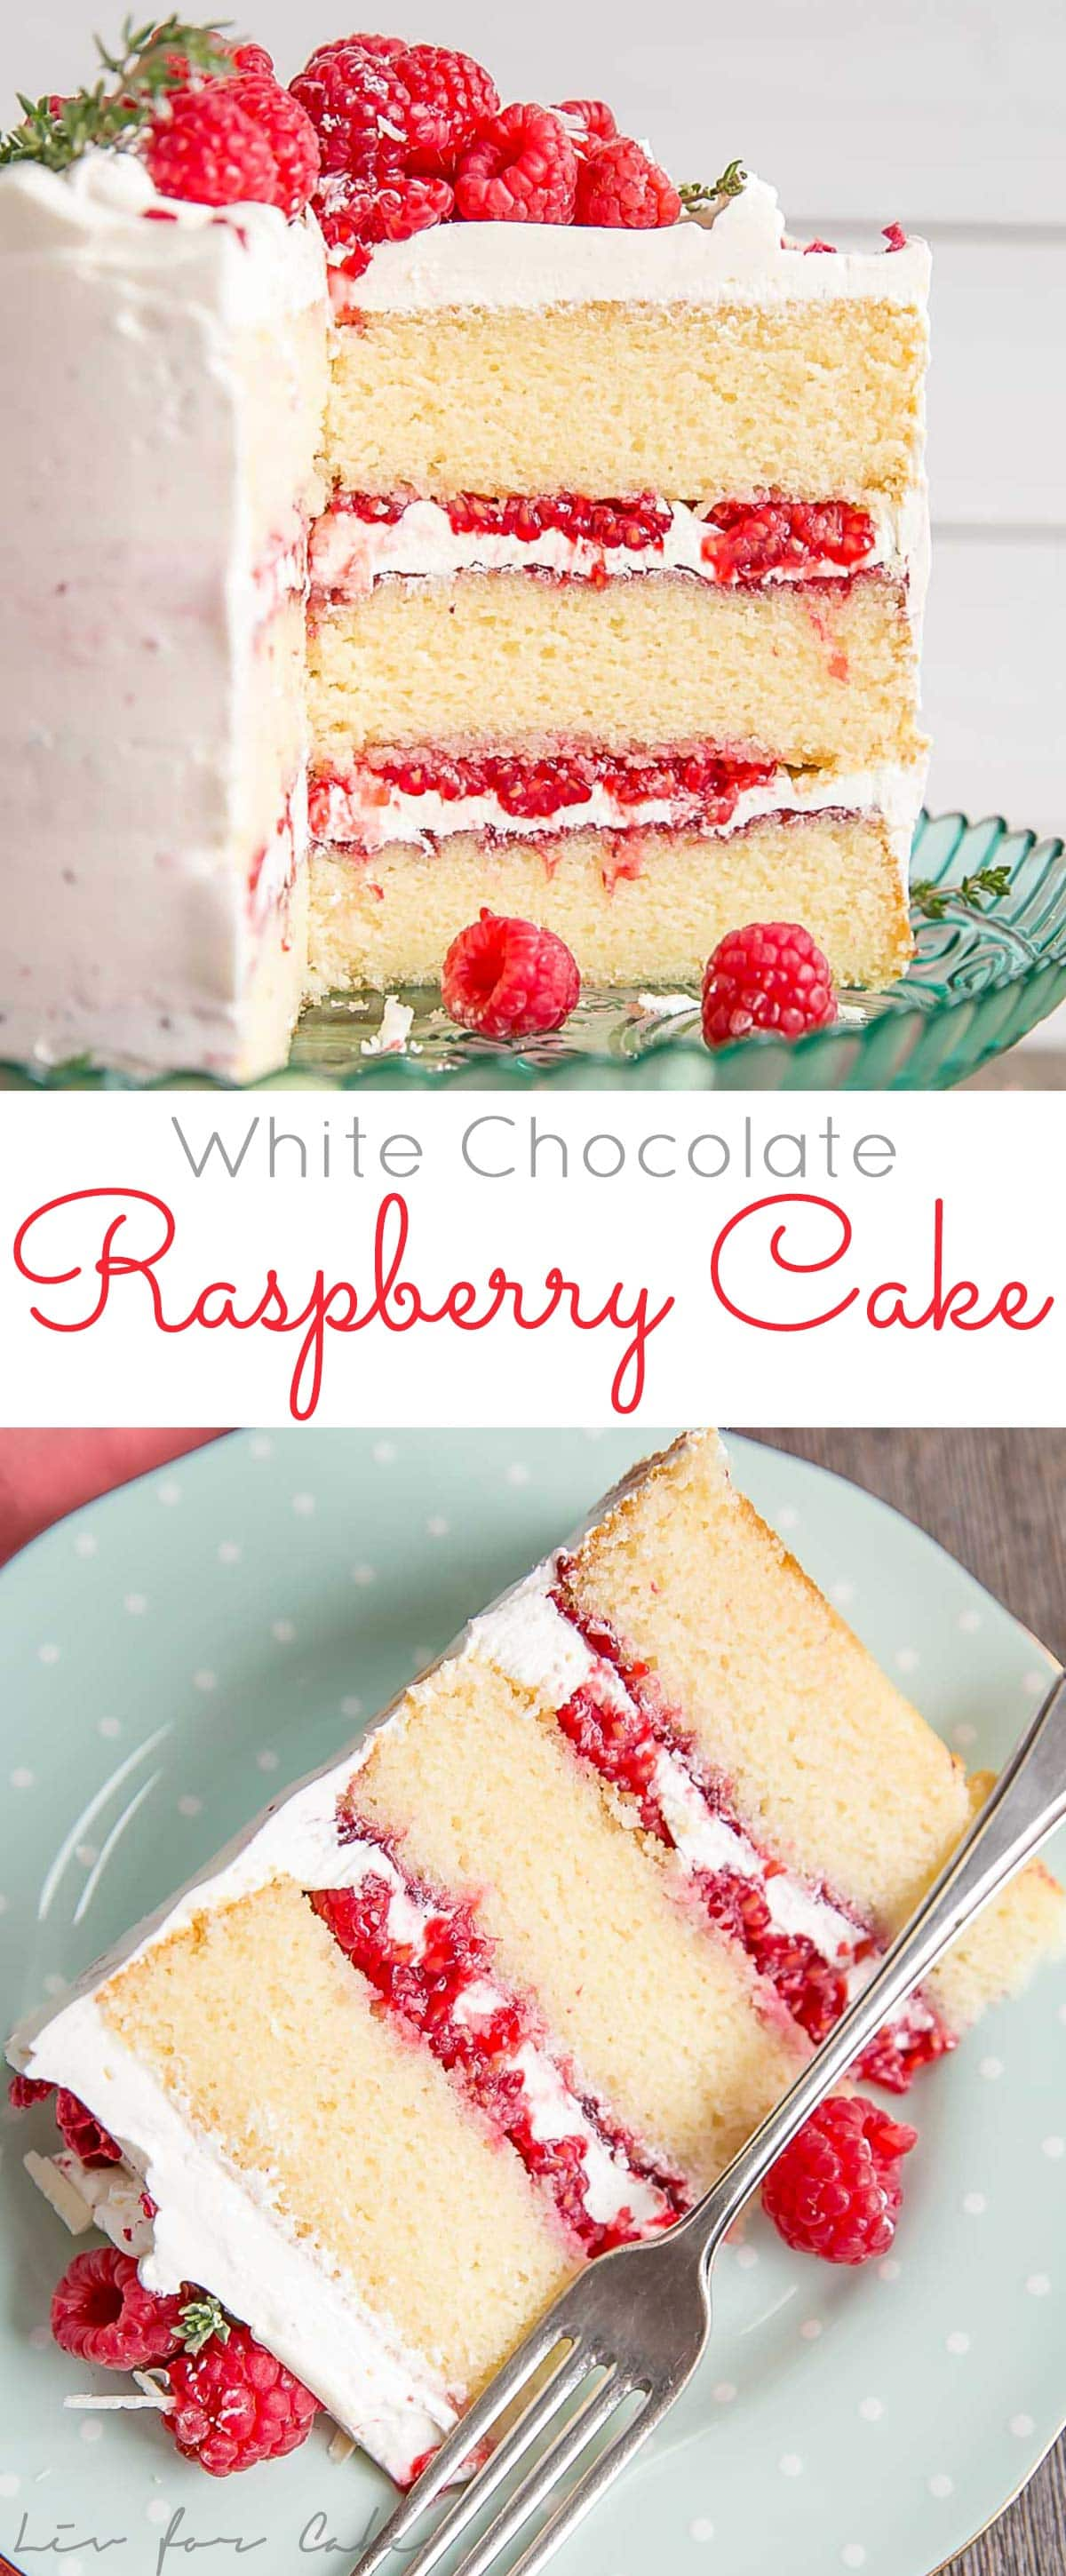 This White Chocolate Raspberry Cake combines white chocolate cake layers with a white chocolate swiss meringue buttercream, fresh raspberries, and raspberry jam. A perfect flavour combination!